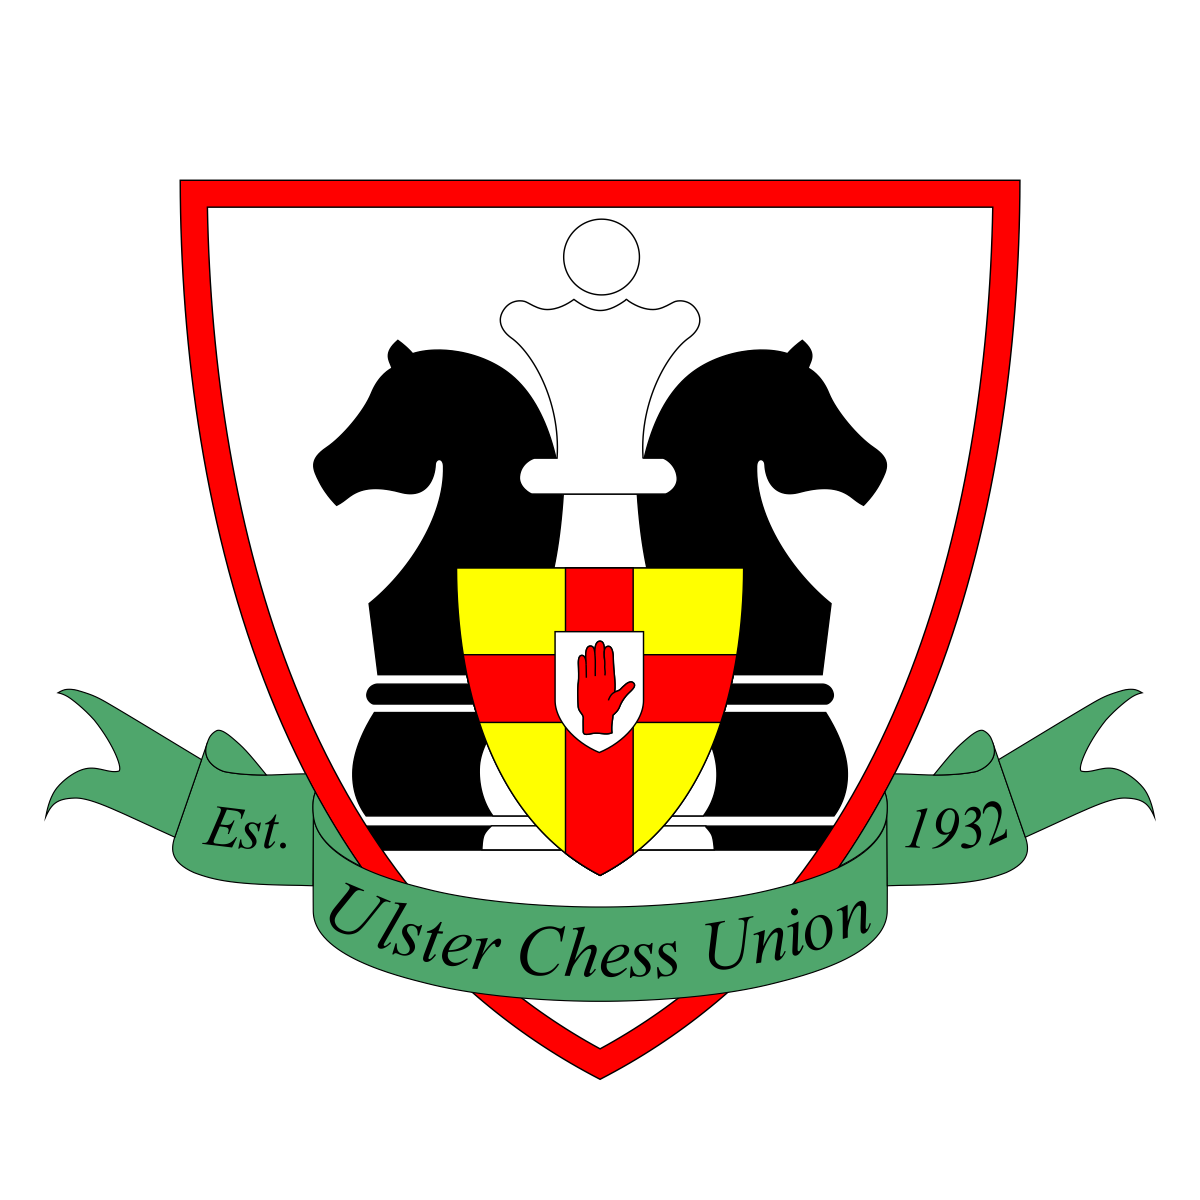 Children's Chess in conjunction with the Ulster Chess Union